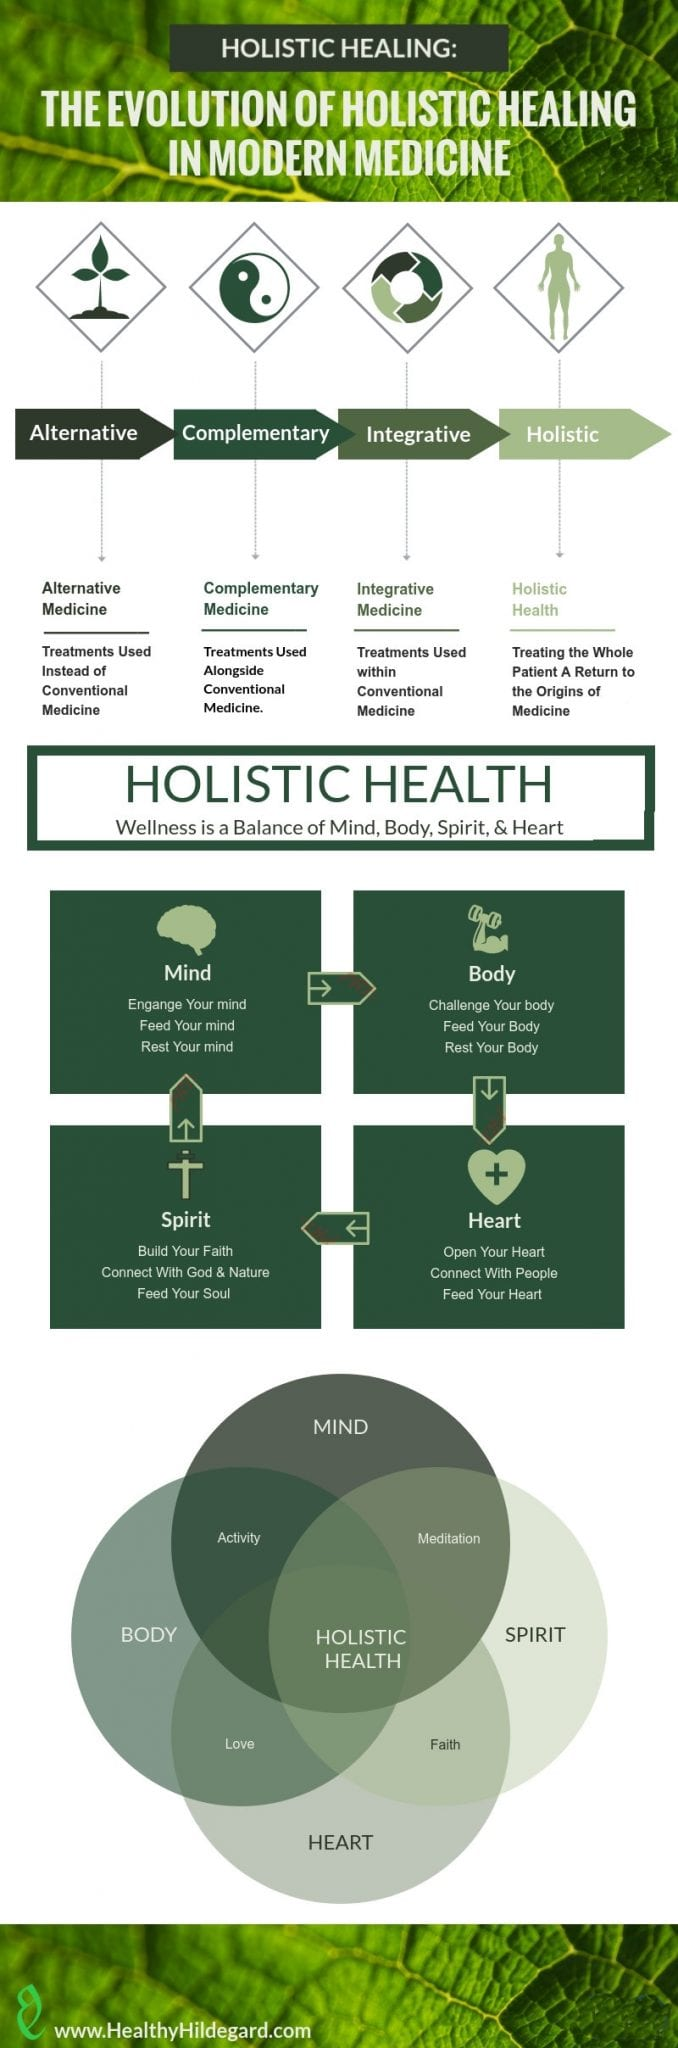 Evolution of Holistic Health and Steps for Holistic Healing Infographic